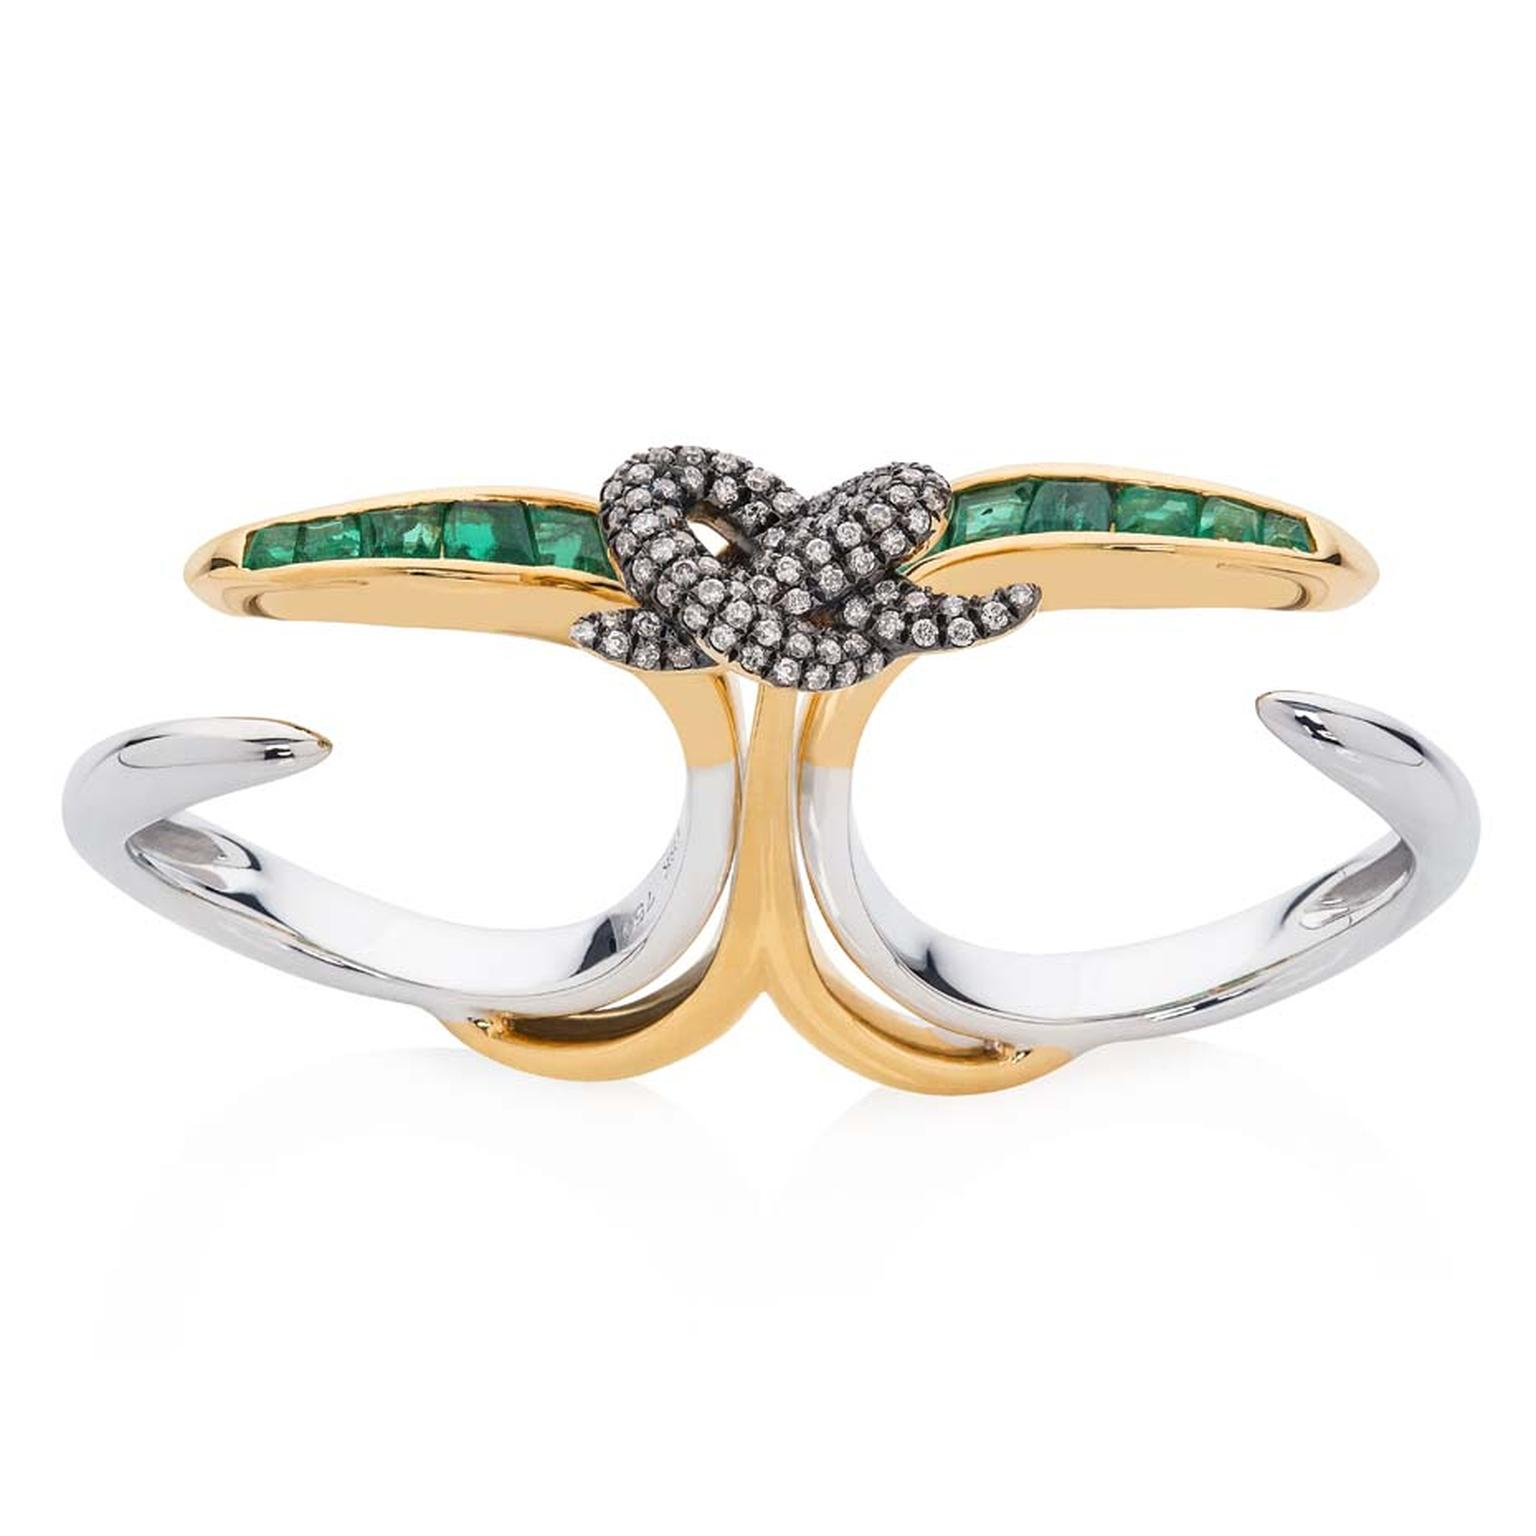 Leyla Abdollahi Lust & Lure collection ring in white and yellow gold with emeralds and diamonds